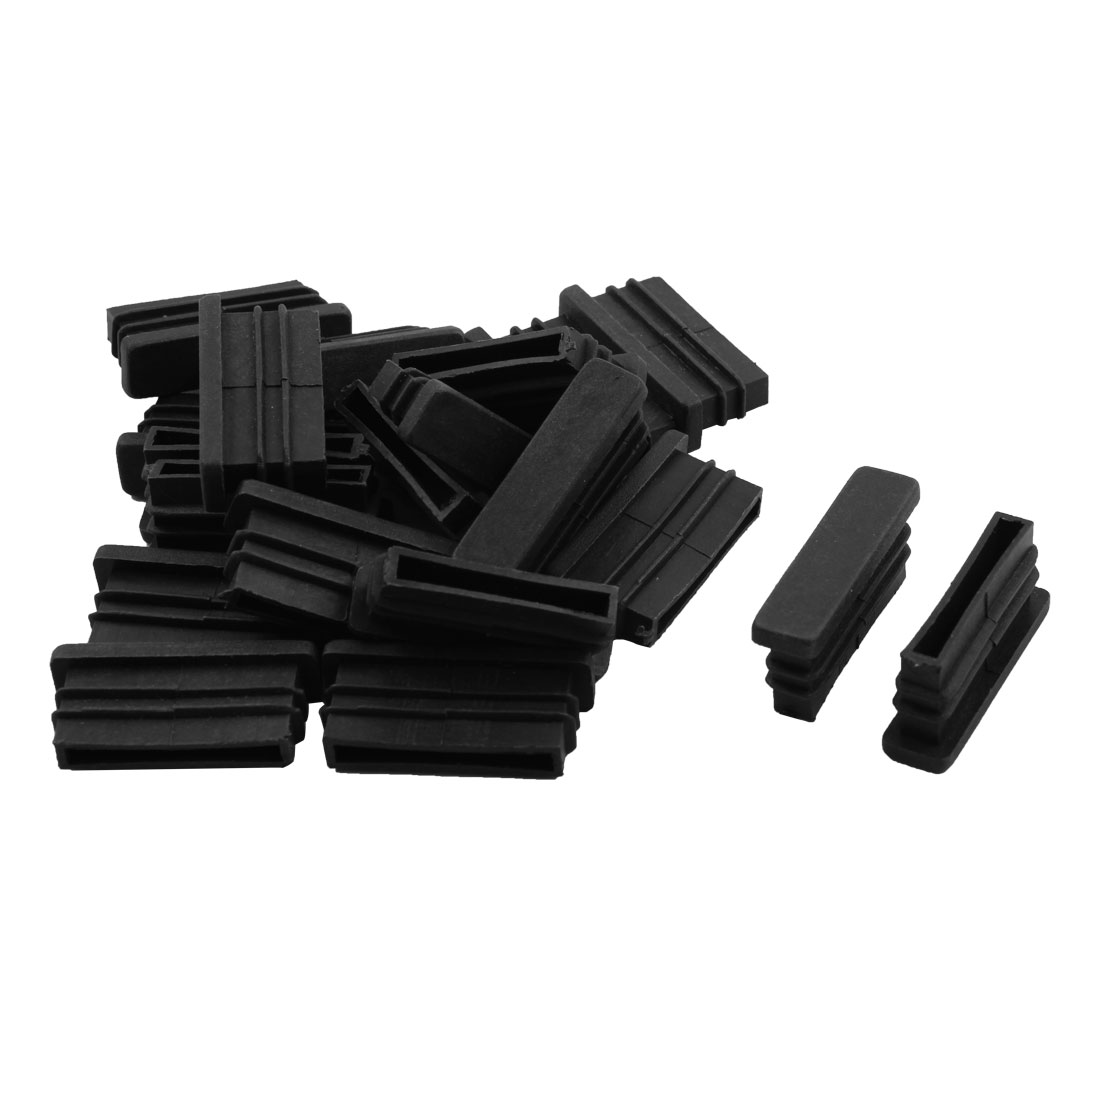 Furniture Sofa Chair Plastic Rectangle Tube Insert Cover Black 10 x 40mm 20pcs